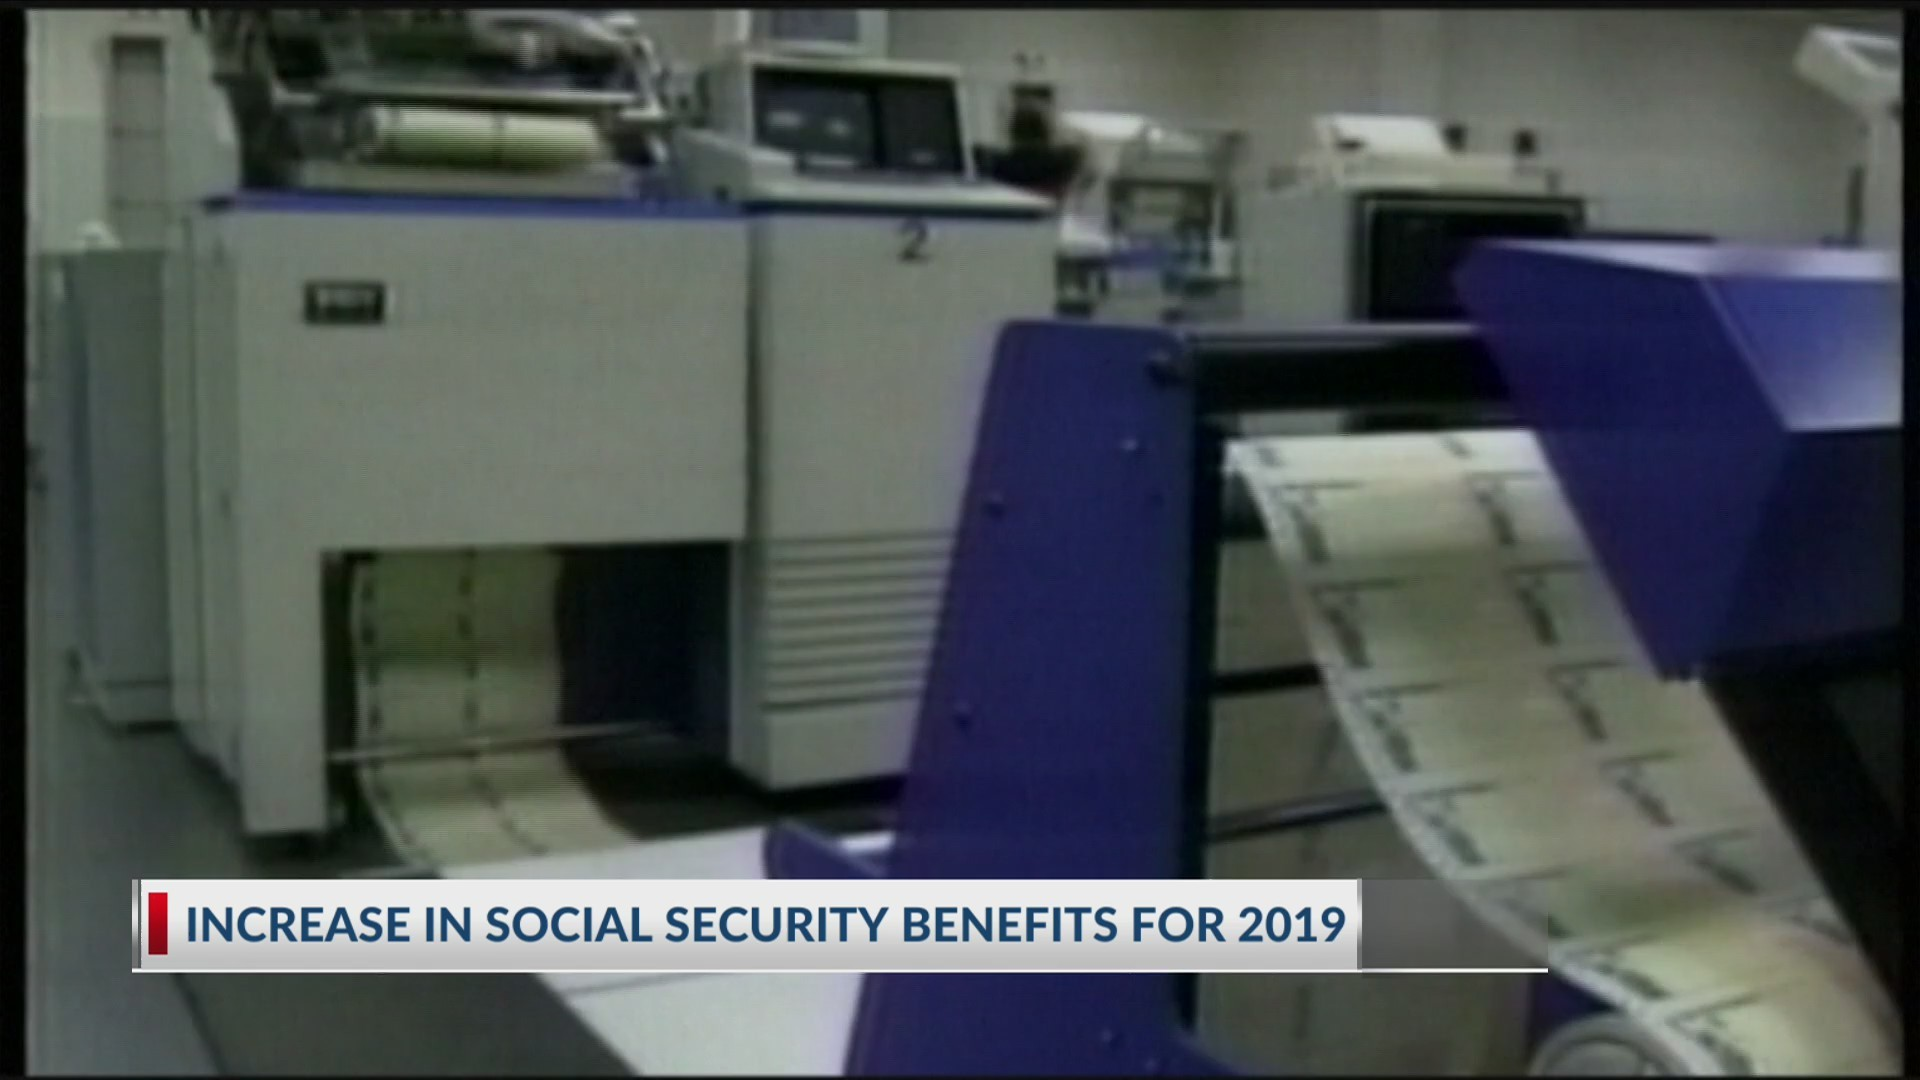 Benefits increase for Social Security recipients and warning from SSA